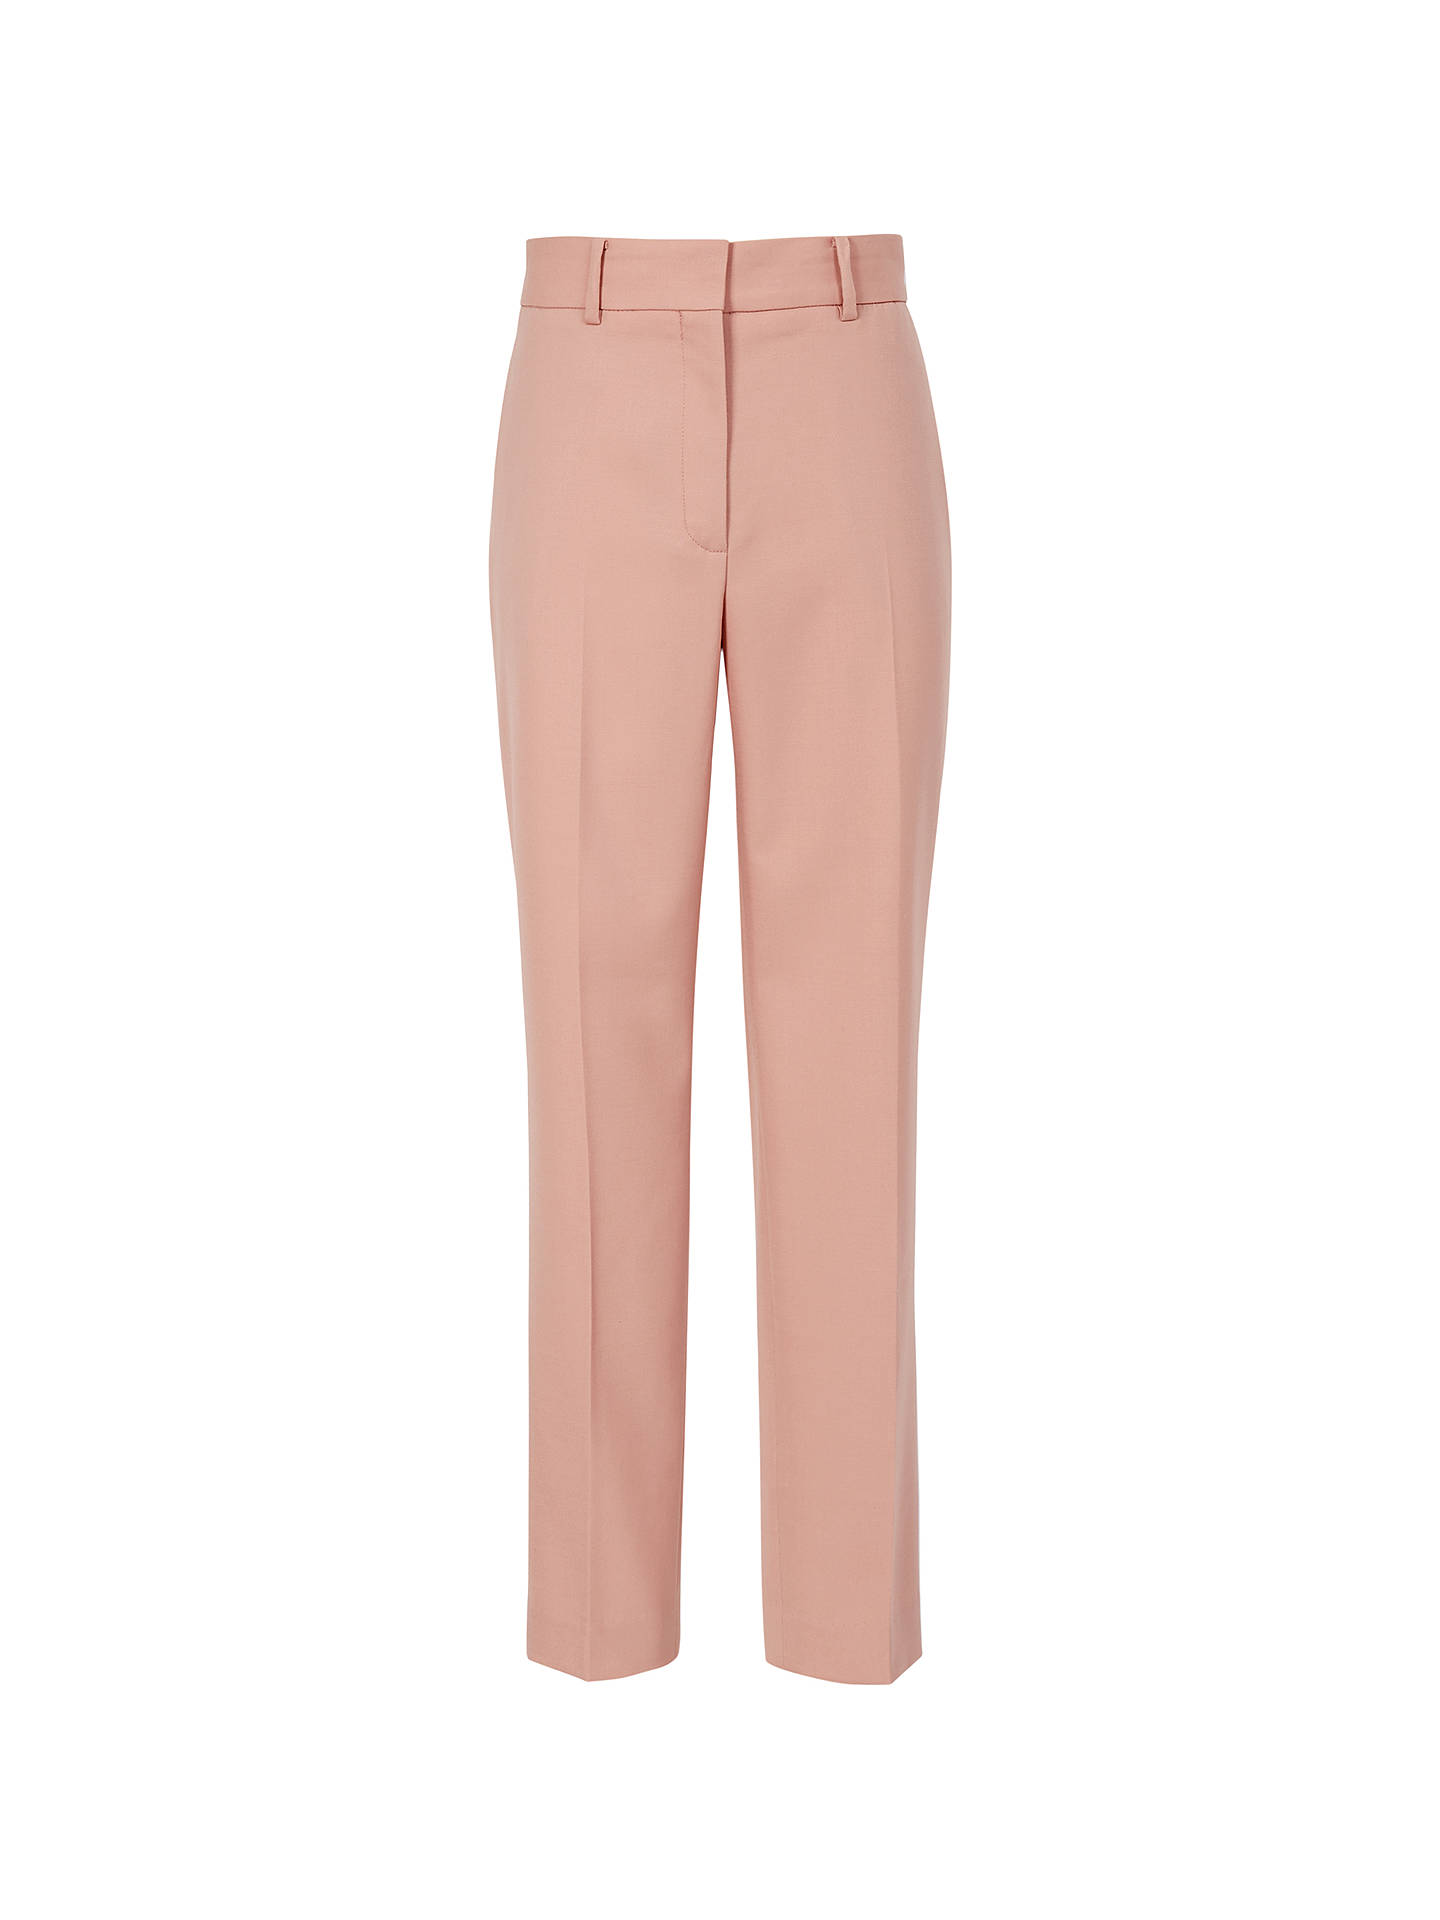 BuyReiss Lilli Tapered Tailored Trousers, Apricot, 8 Online at johnlewis.com